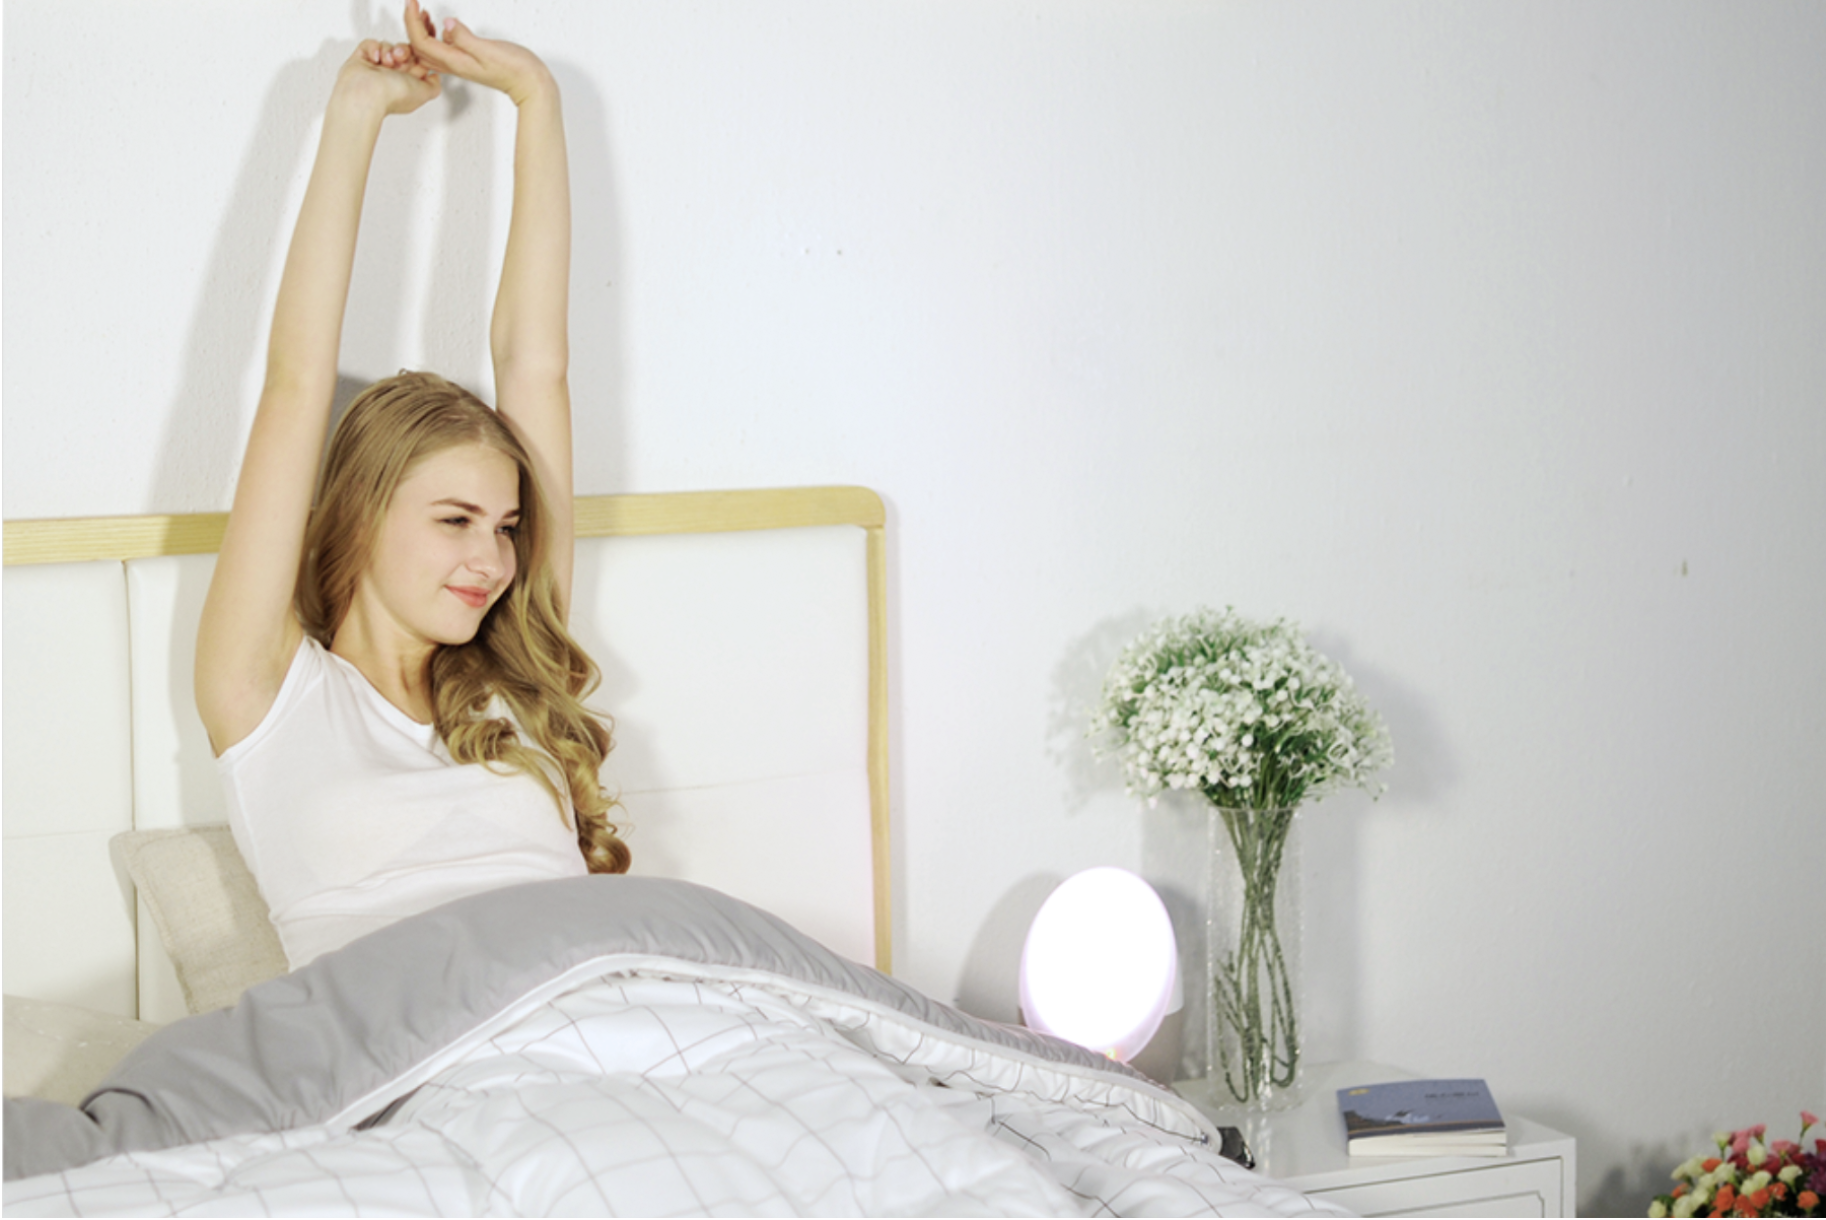 7:30 AM - Calm ambient music starts to play and volume up during your last lightest sleep cycle so you will wake up feeling refresh and fully recharged.